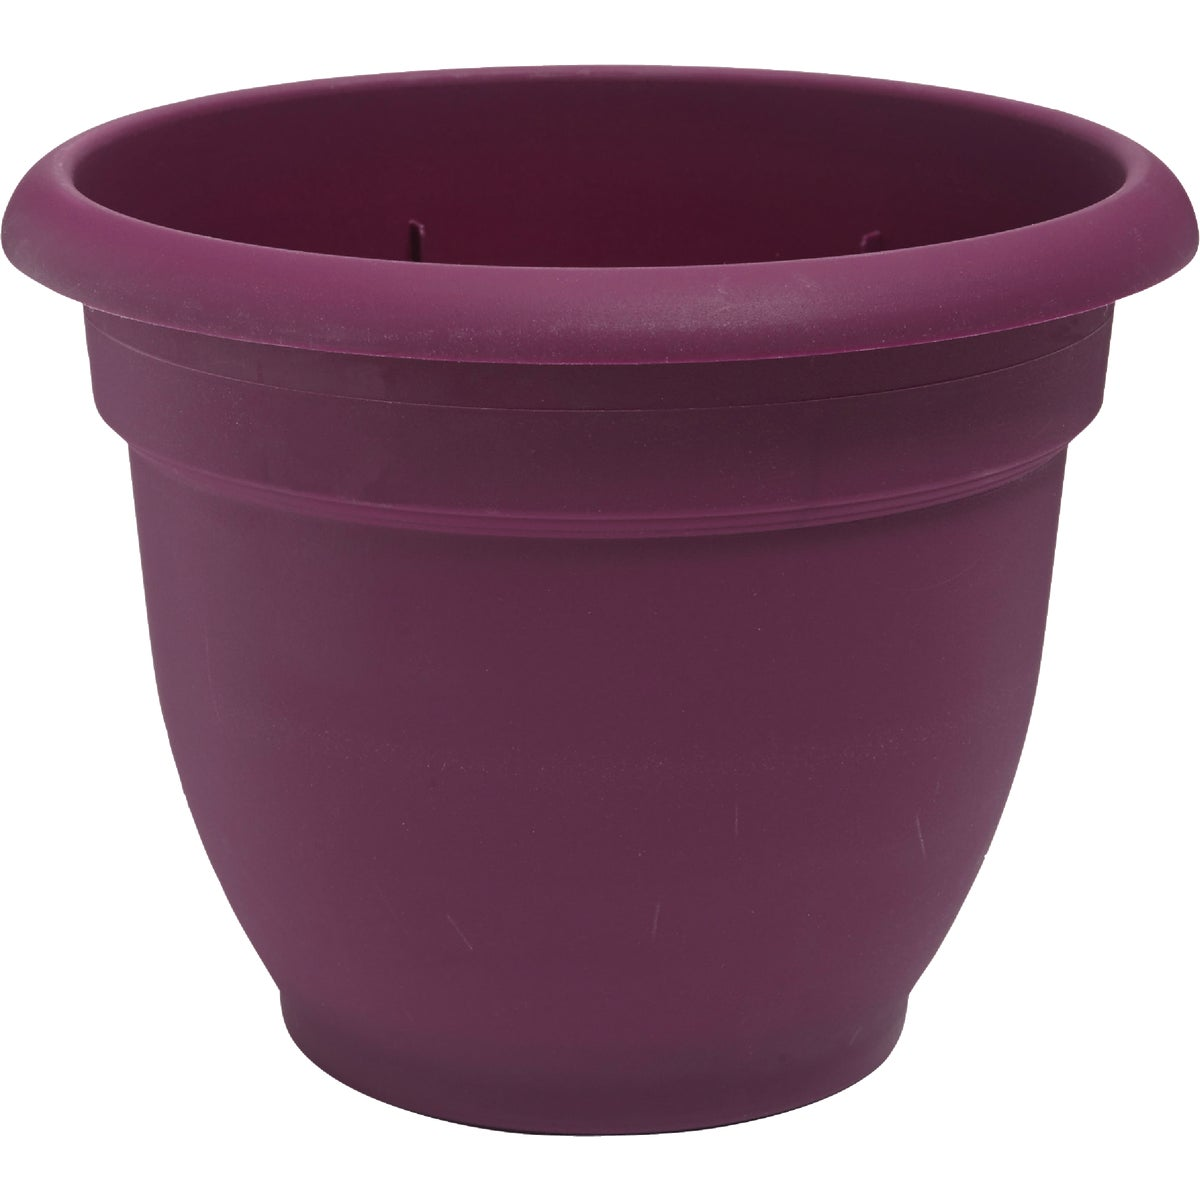 "8"" FUCHSIA ARIANA POT - 465083-1001 by Fiskars Brands Inc"